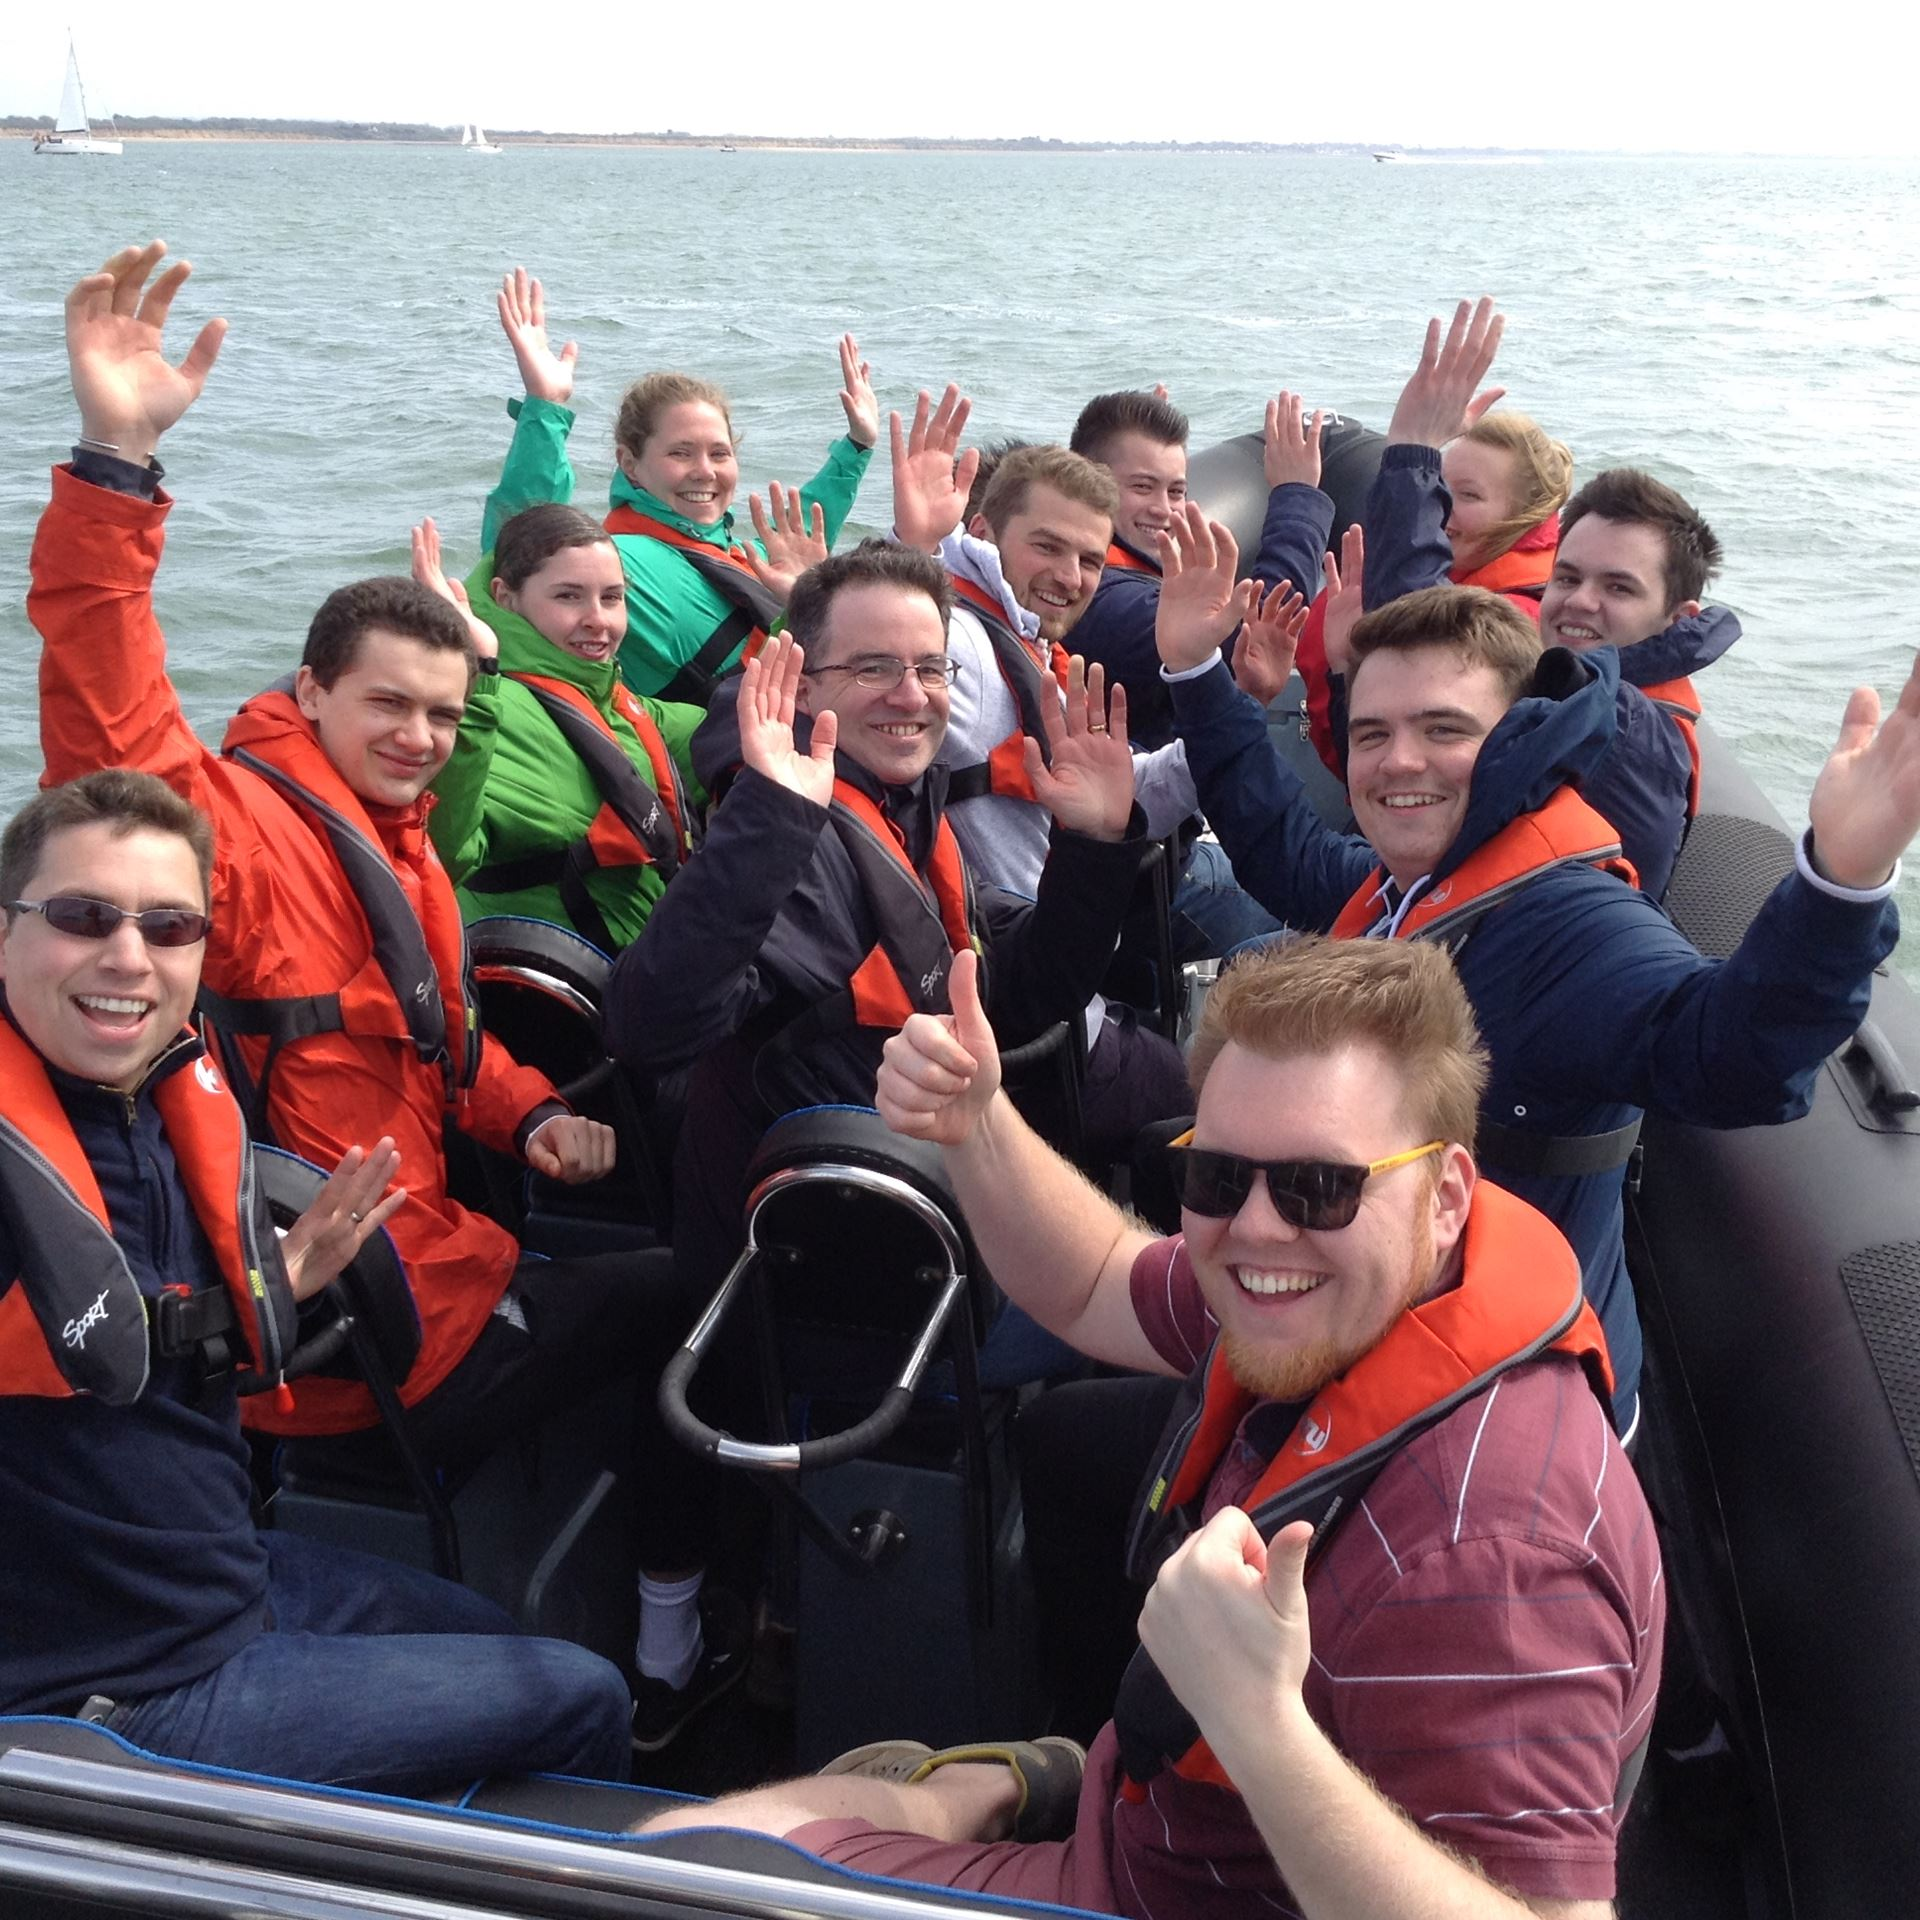 Team Day powerboating